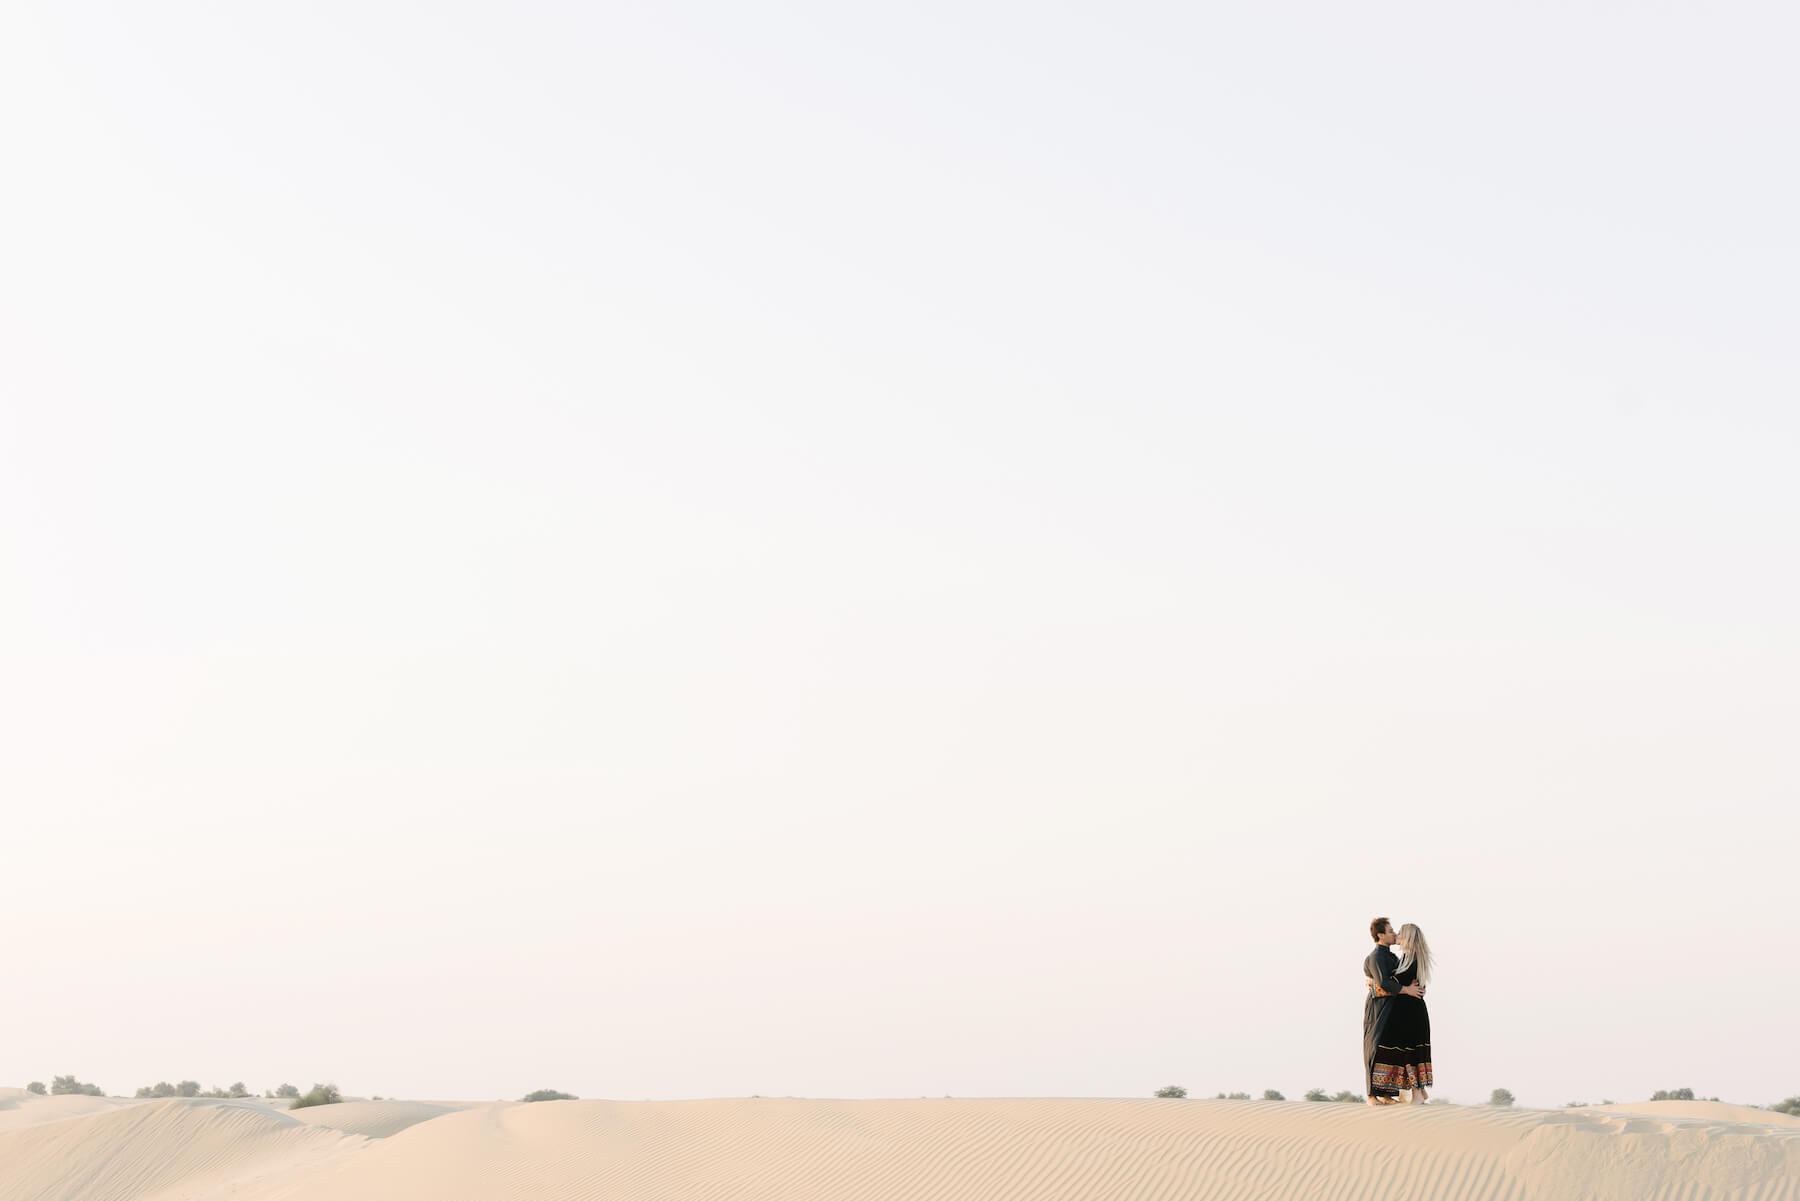 Couple hugging and kissing each other in the desert sands at the Dubai Desert Conservation Reserve